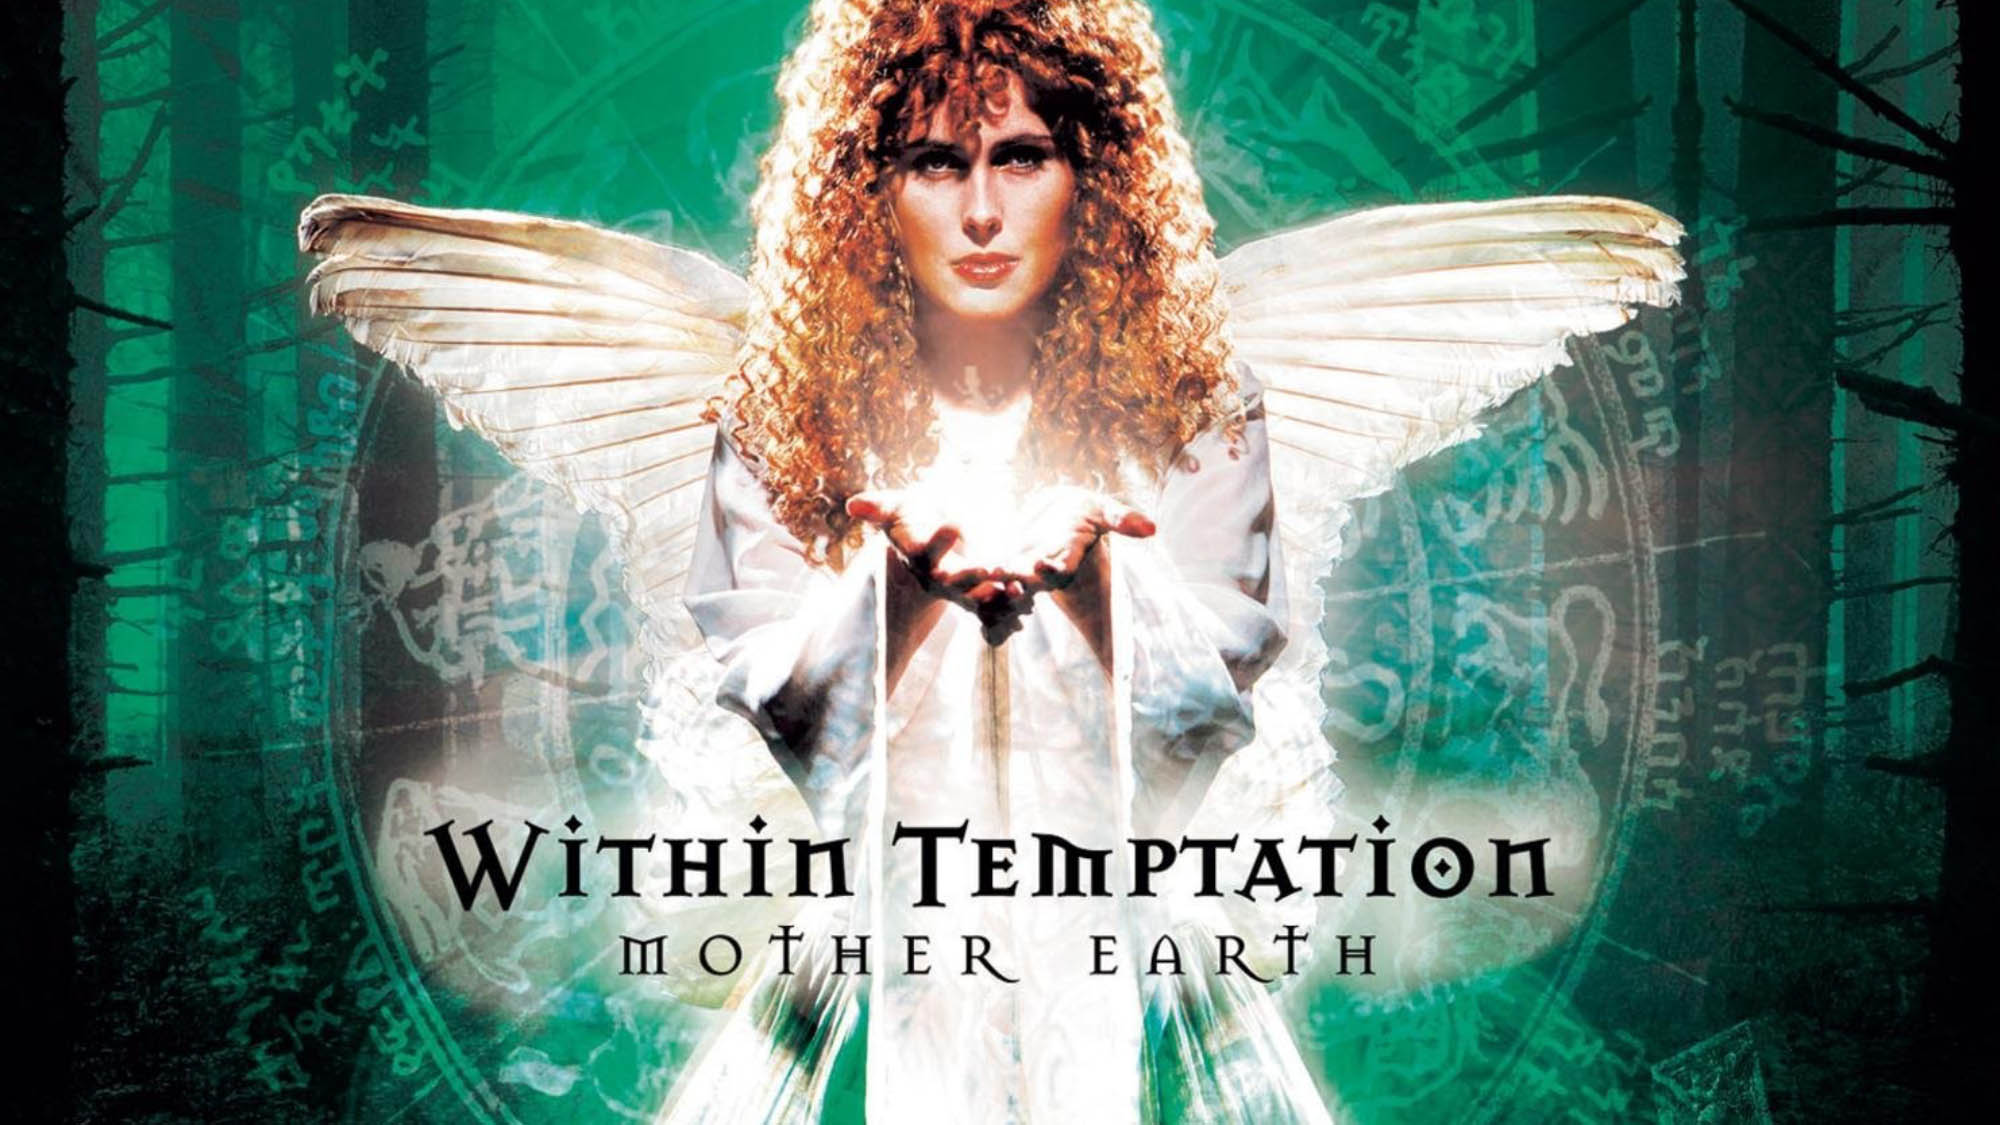 Within Temptation Throwback 2000 Mother Earth release album